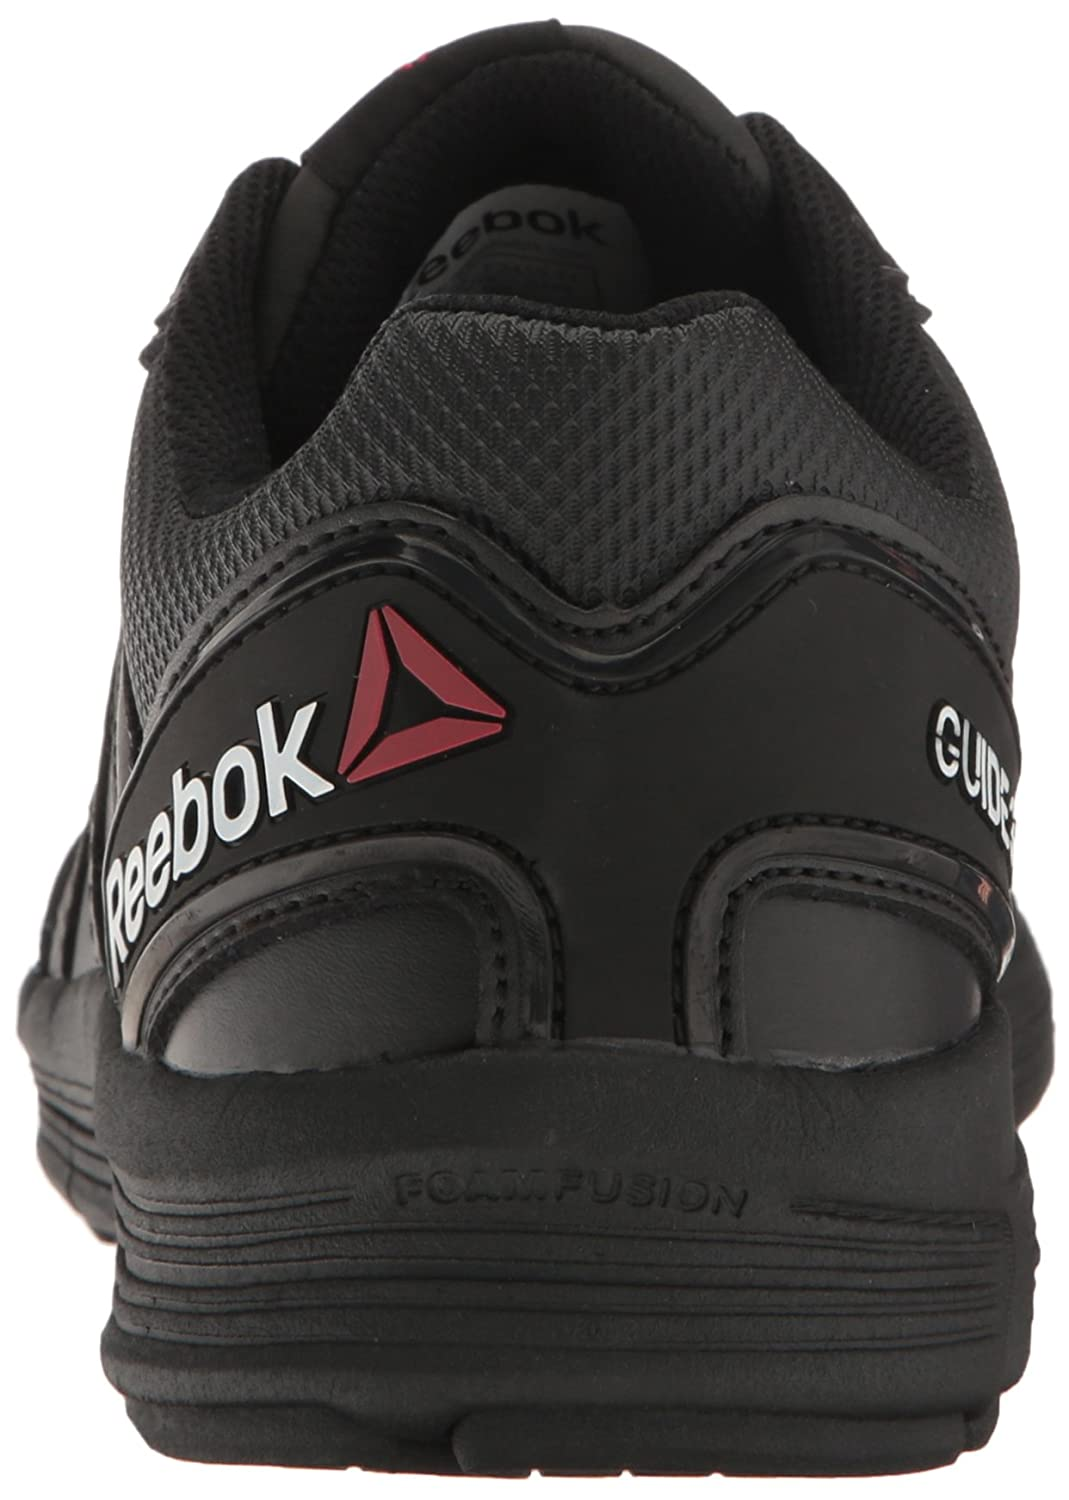 0ecae1f284fd02 Amazon.com  Reebok Work RB351 Women s Guide Work Performance Cross Trainer   Shoes